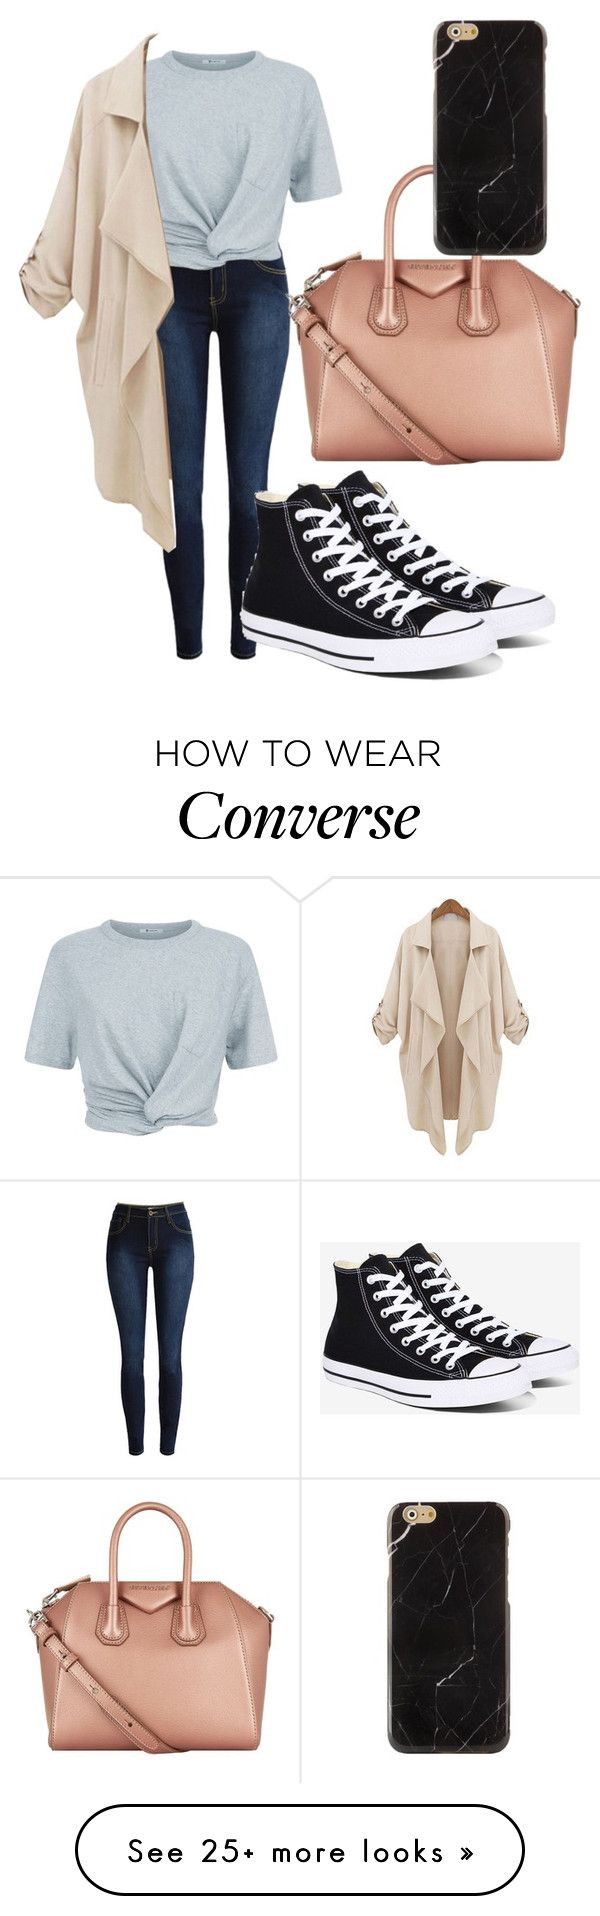 """""""Untitled #167"""" by ntone3 on Polyvore featuring T By Alexander Wang, Converse and Givenchy"""